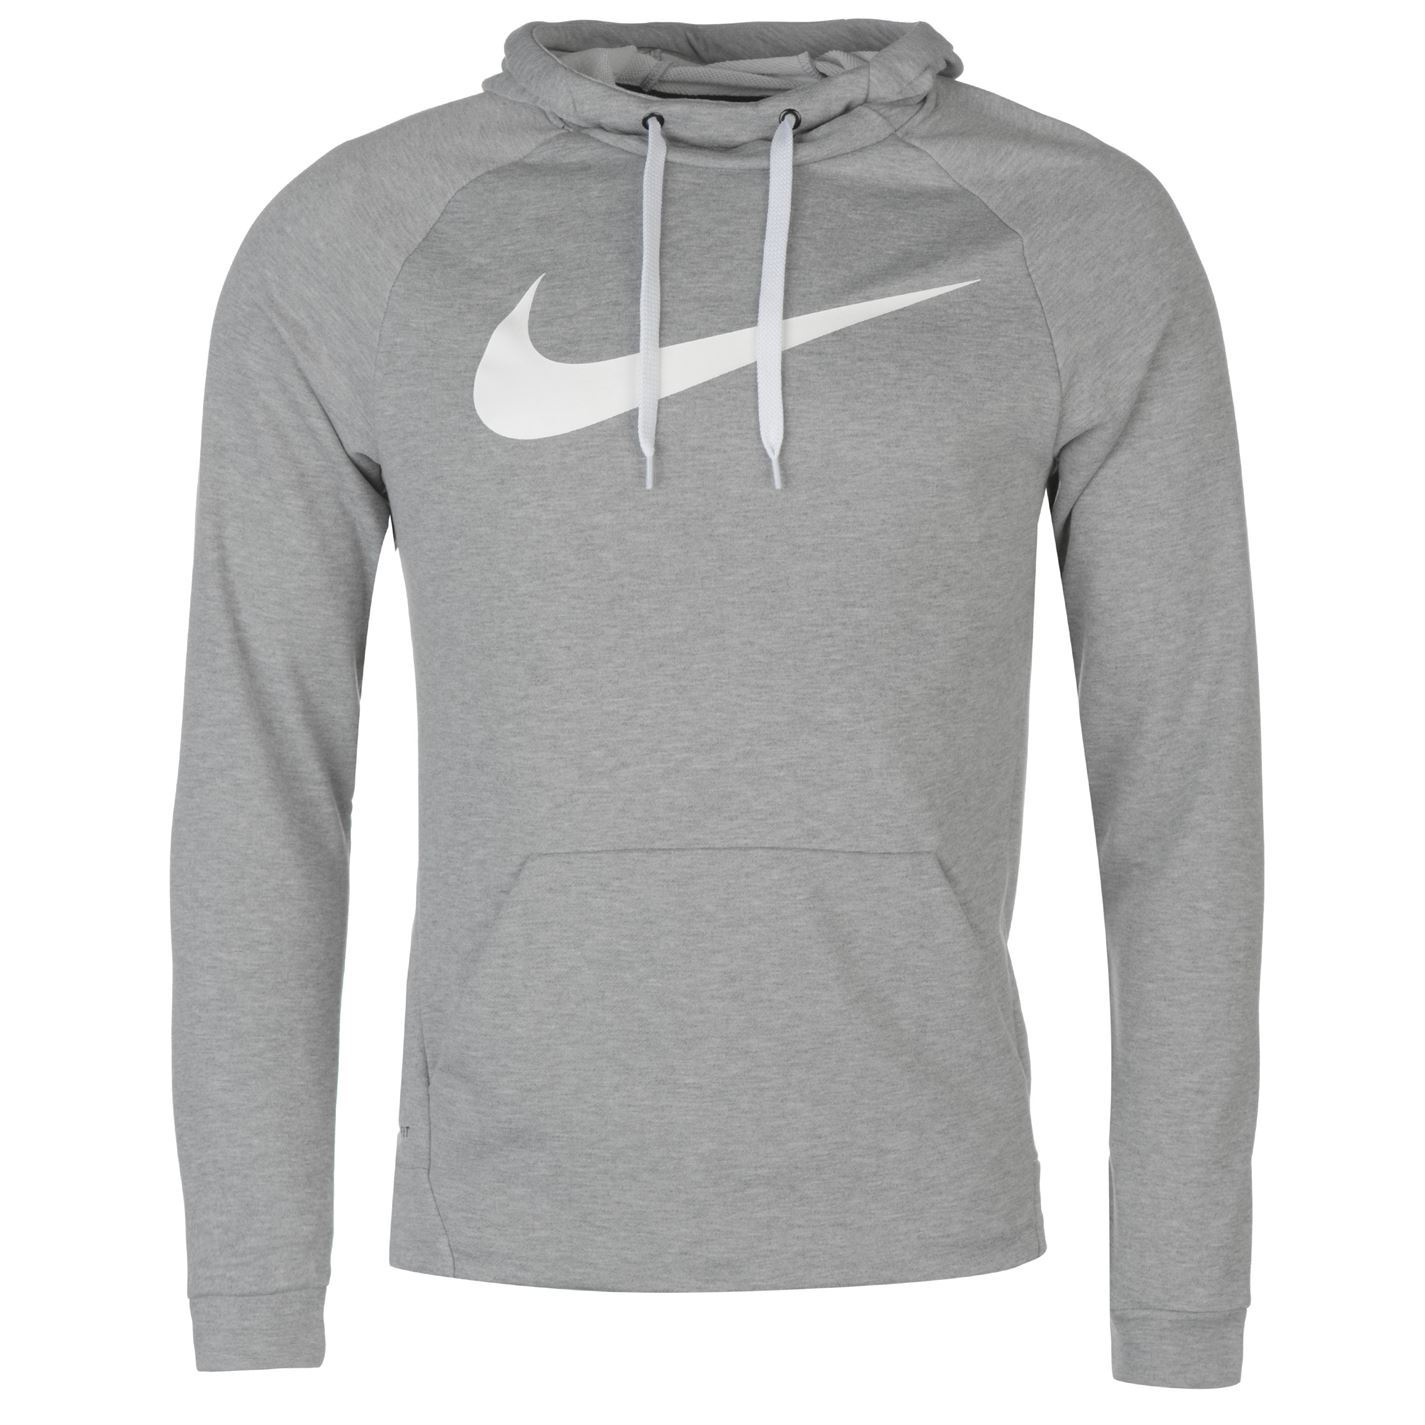 Nike-Dri-Fit-Swoosh-Pullover-Hoody-Mens-OTH-Hoodie-Sweatshirt-Sweater-Hooded-Top thumbnail 14